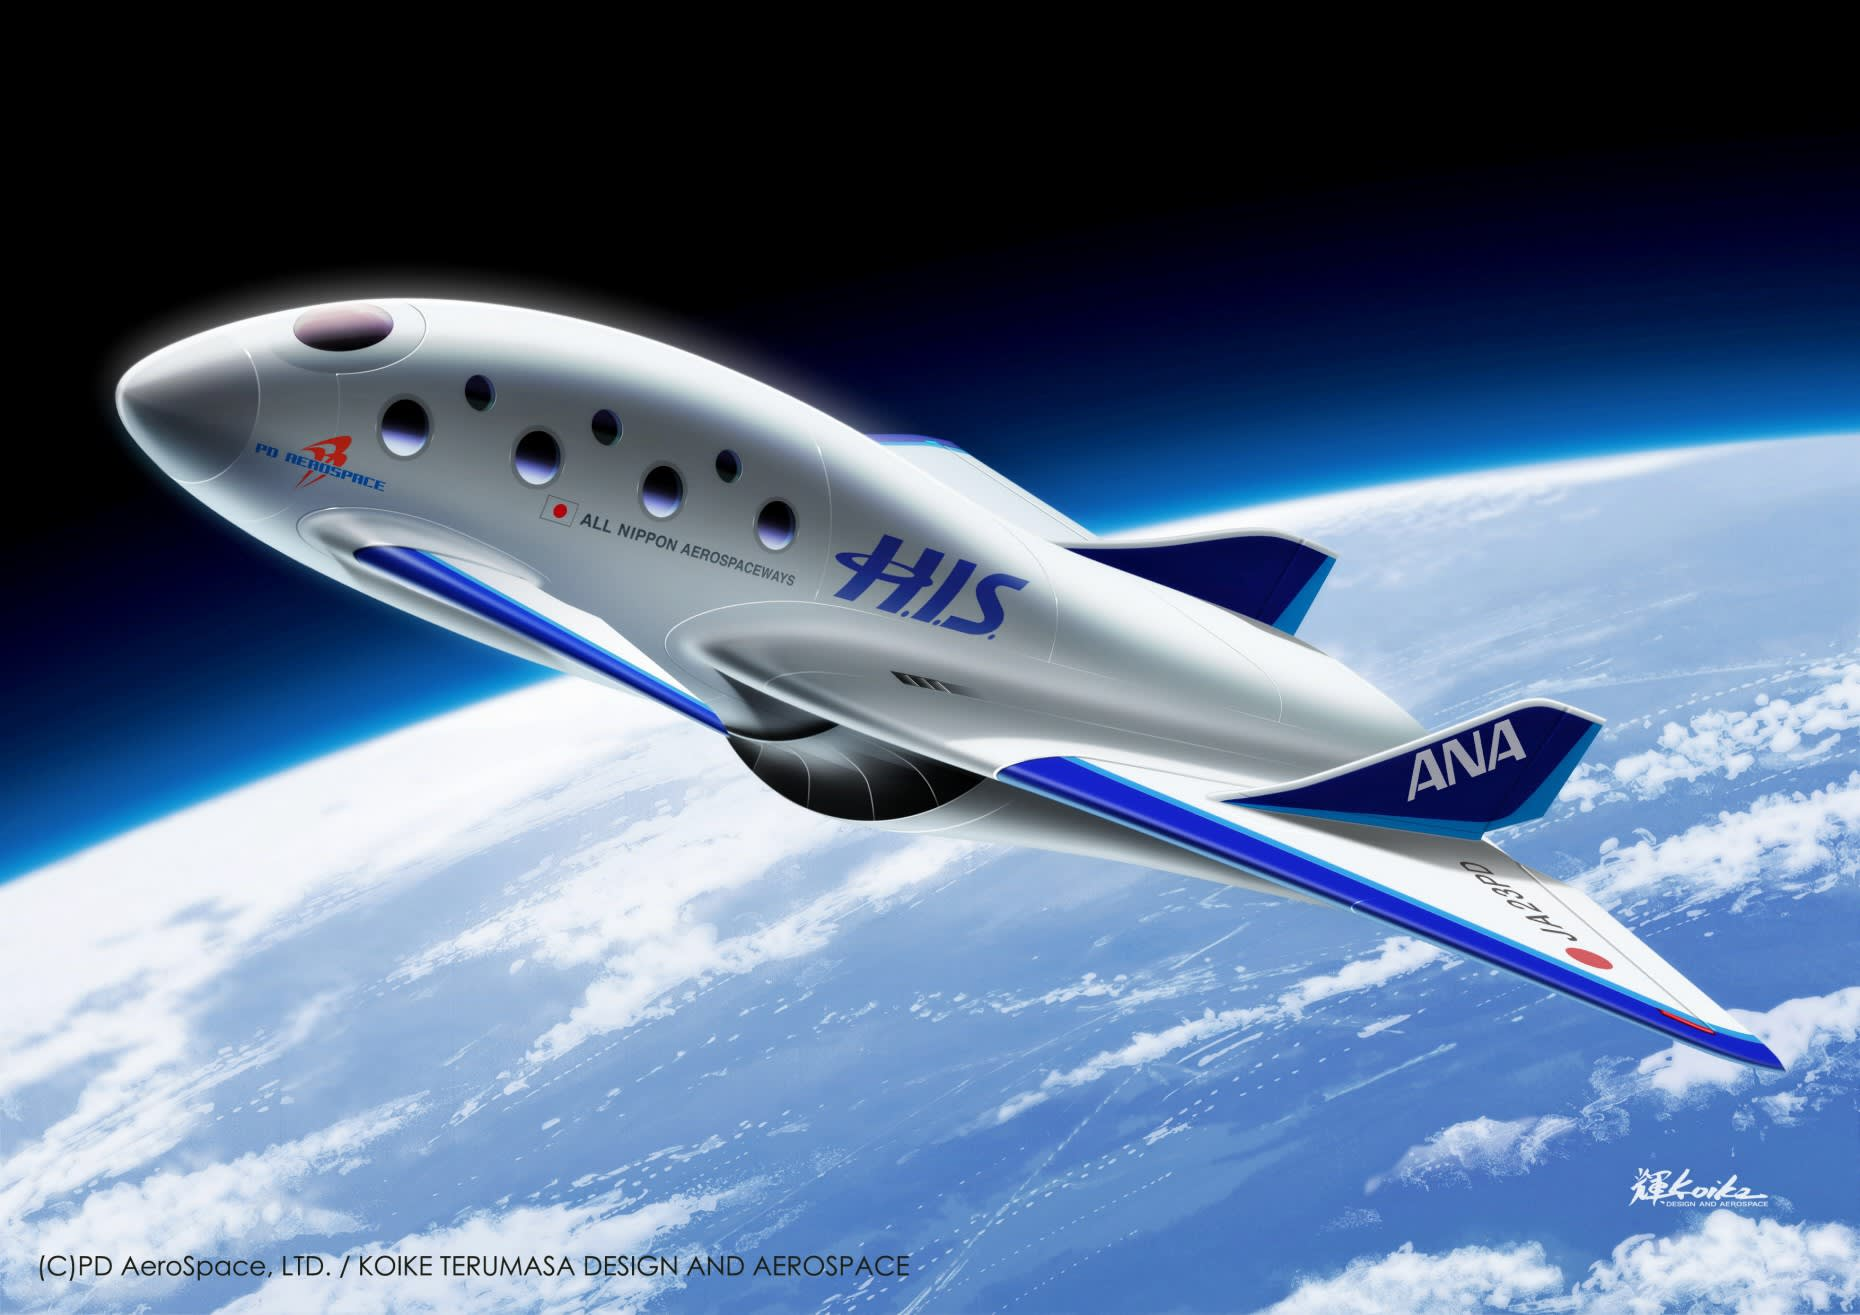 A rendering of a spacecraft under development by ANA and PD Aerospace. The airline and its partners aim to build a space travel hub with runways for horizontal takeoff.